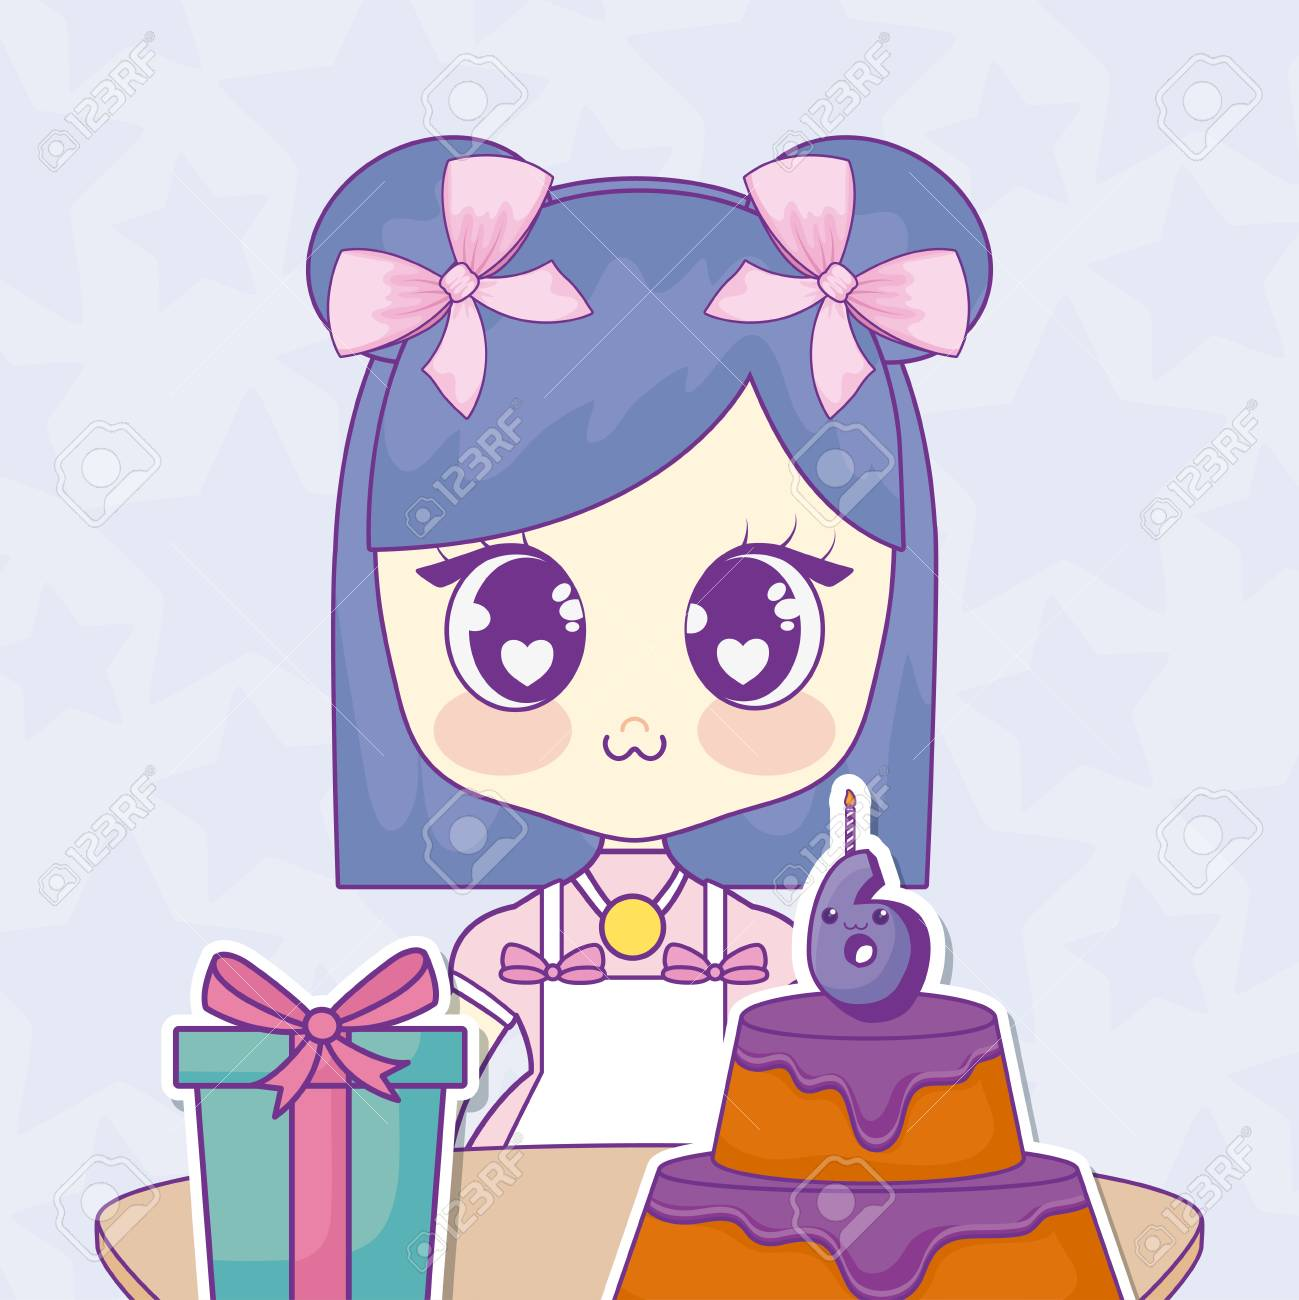 Happy Birthday Design With Anime Girl With Birthday Cake And